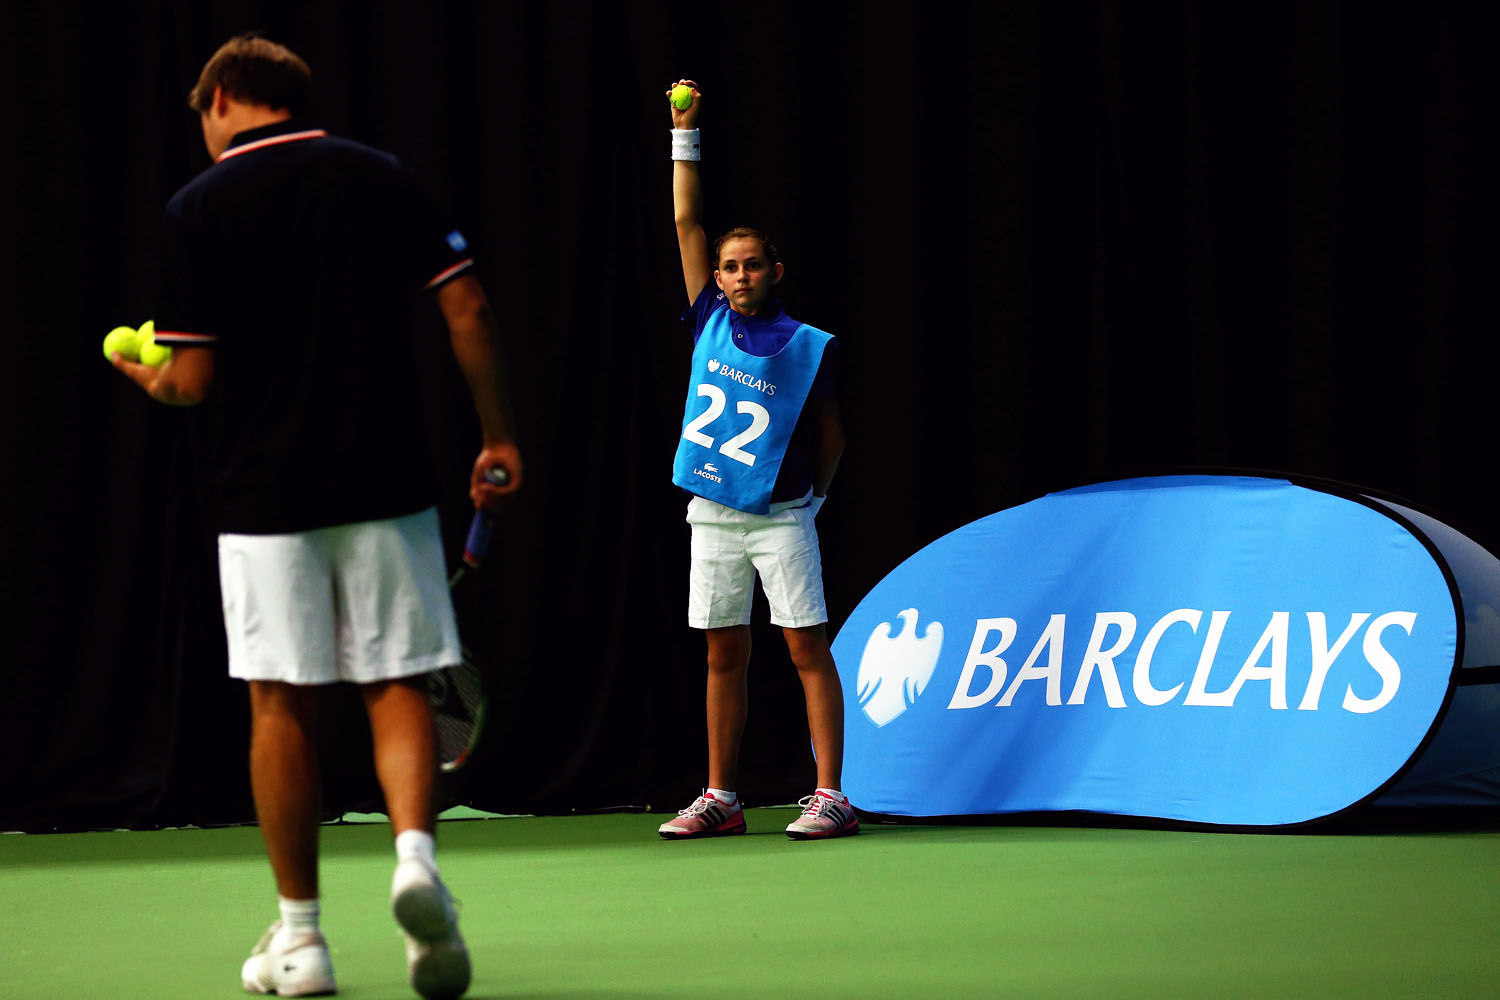 The Final 30 Barclays Ball kids in action during the Barclays Ball Kids Training Day at the The Warwickshire Health & Racquets Club on September 8, 2013 in Coventry, England.